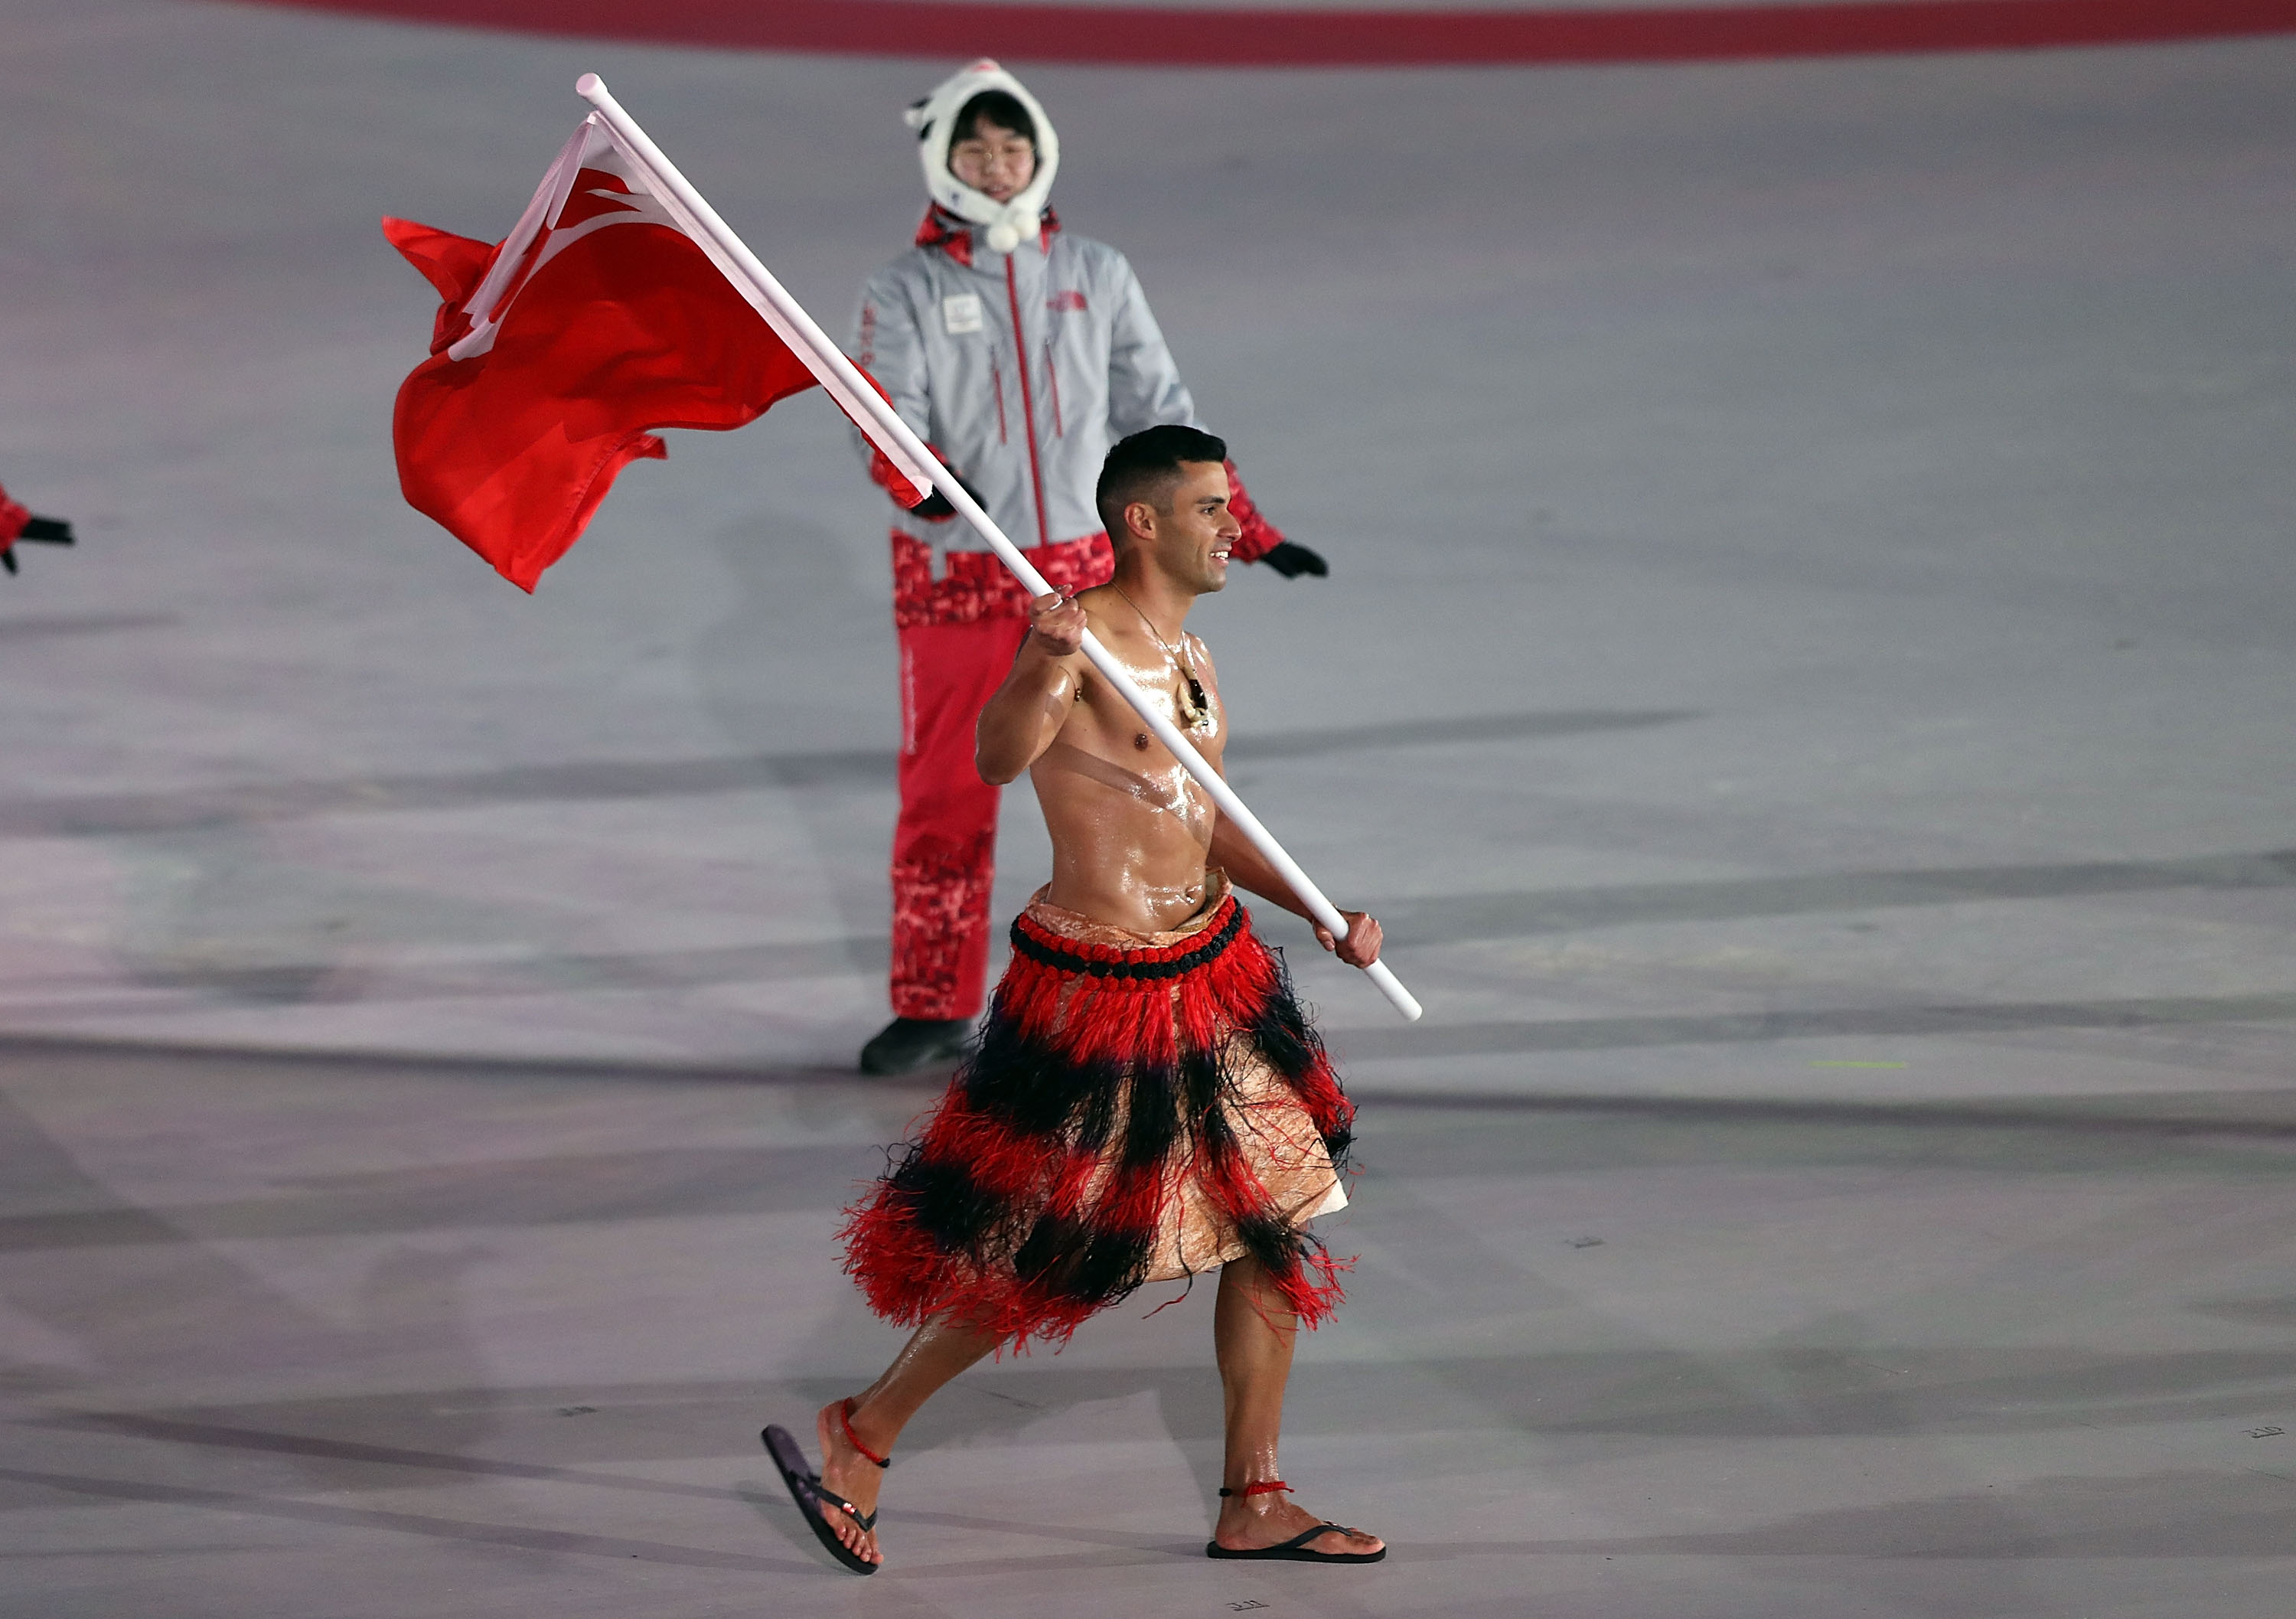 PYEONGCHANG-GUN, SOUTH KOREA - FEBRUARY 09:  : Flag bearer Pita Taufatofua of Tonga leads the team during the Opening Ceremony of the PyeongChang 2018 Winter Olympic Games at PyeongChang Olympic Stadium on February 9, 2018 in Pyeongchang-gun, South Korea.  fee liable image, copyright © ATP  Amin JAMALI  XXIII. OLYMPIC WINTER GAMES PYEONGCHANG 2018: OPENING CEREMONY,  PyeongChang, Korea, Winter Olympics; PyeongChang Olympic Stadium, on 9. February 2018, fee liable image, copyright © ATP / Amin JAMALI  Featuring: Flag bearer Pita Taufatofua of Tonga Where: Pyeongchang, Gangwon Province, South Korea When: 09 Feb 2018 Credit: ATP/WENN.com  **Not available for publication in Germany or France. No Contact Music.**